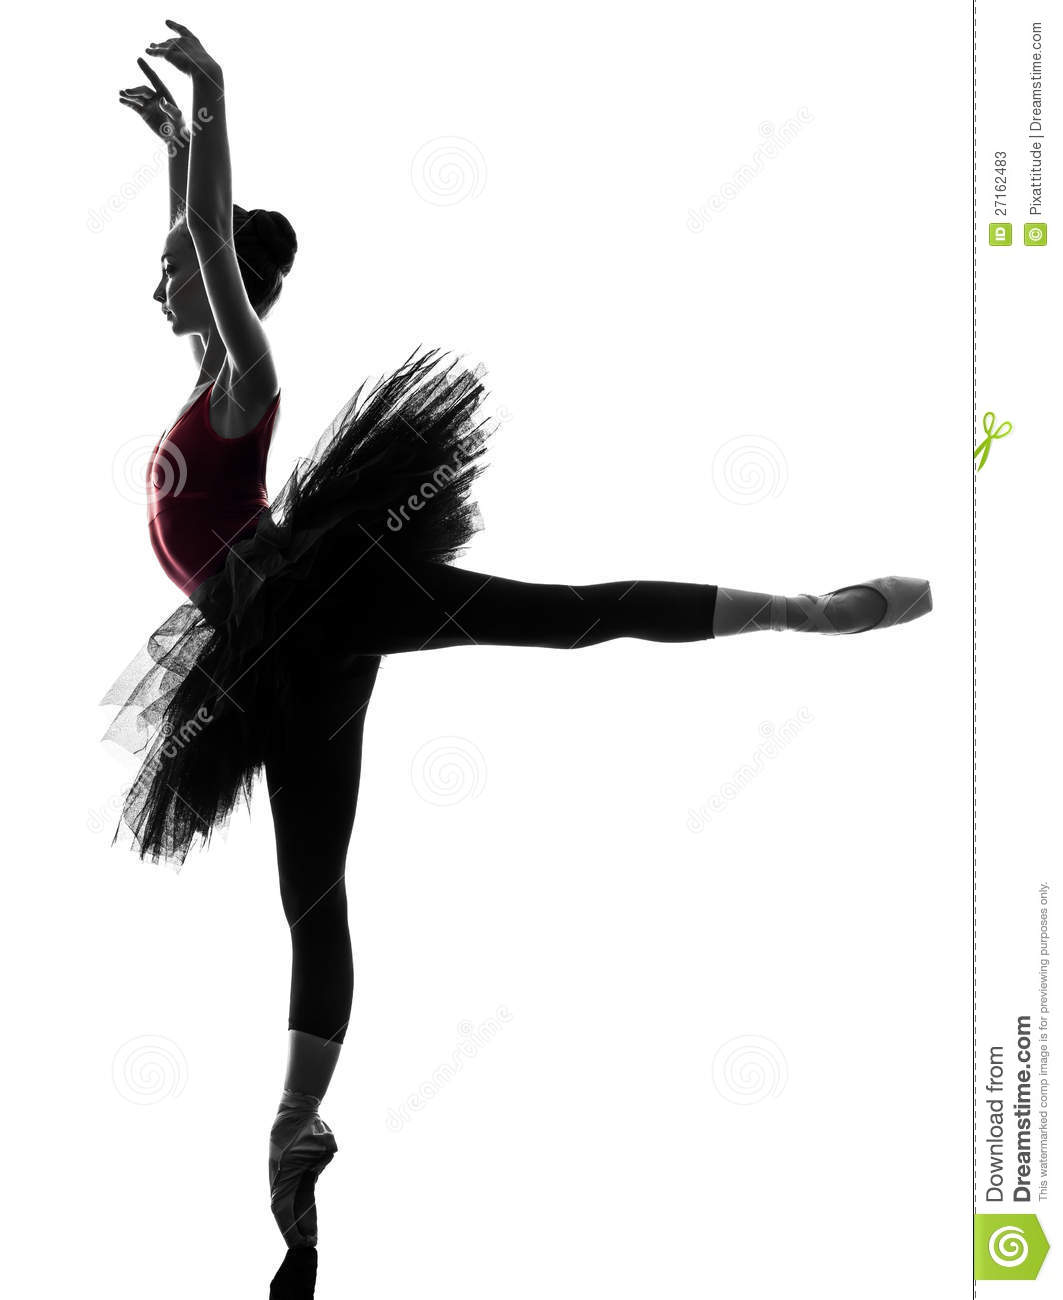 danse de danseur de ballet de ballerine de jeune femme image stock image 27162483. Black Bedroom Furniture Sets. Home Design Ideas